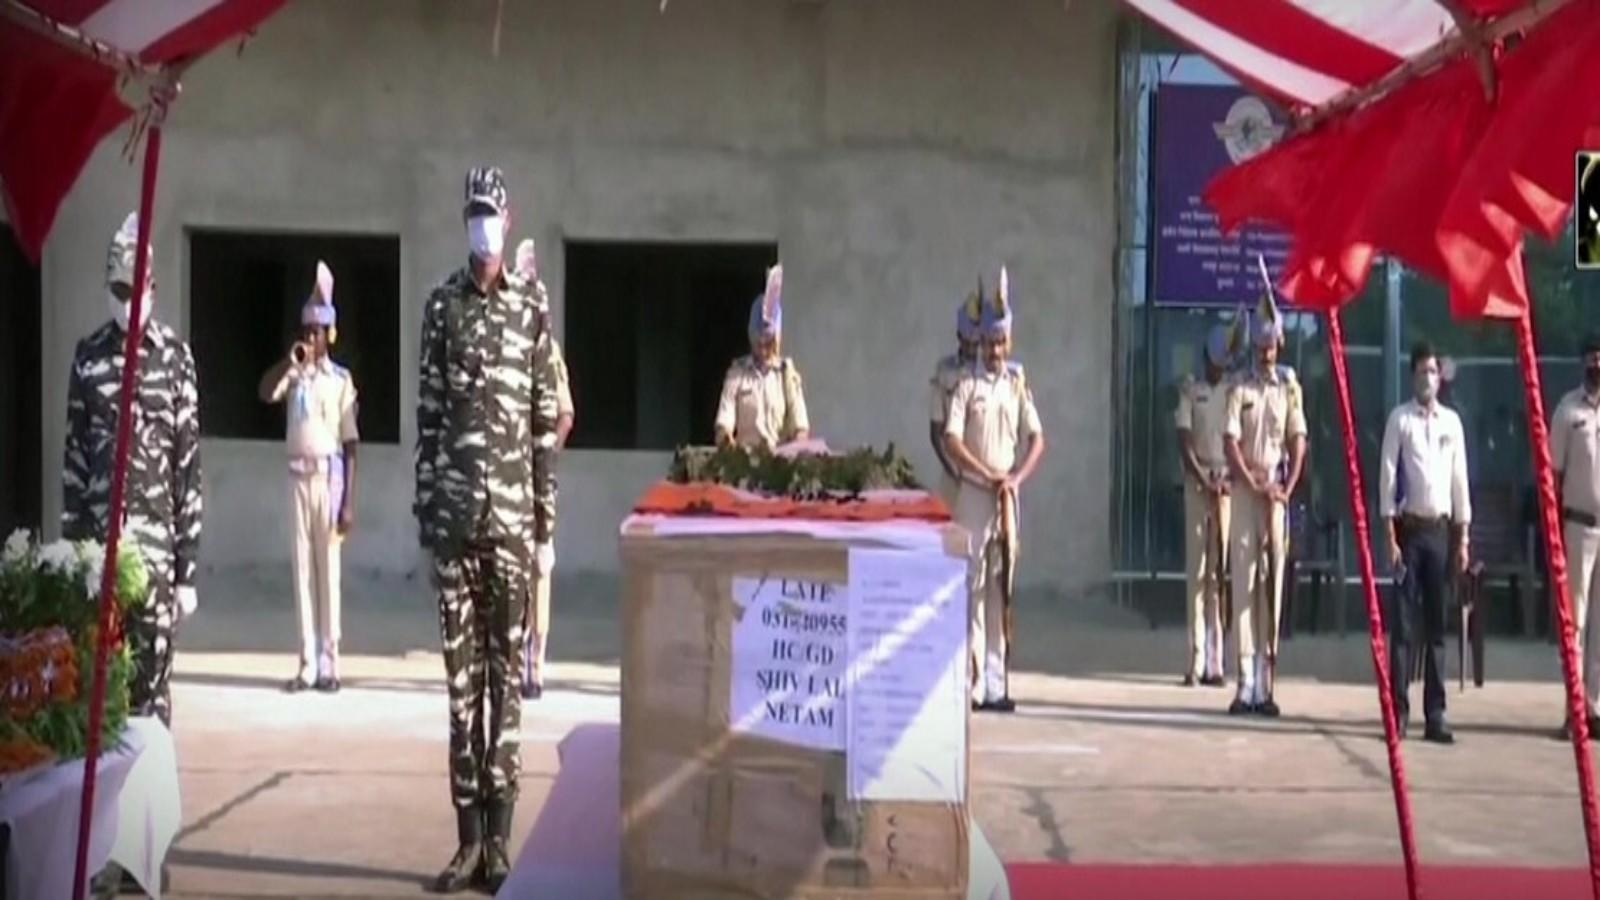 anantnag-encounter-wreath-laying-ceremony-of-crpf-jawan-shiv-lal-netam-held-in-raipur